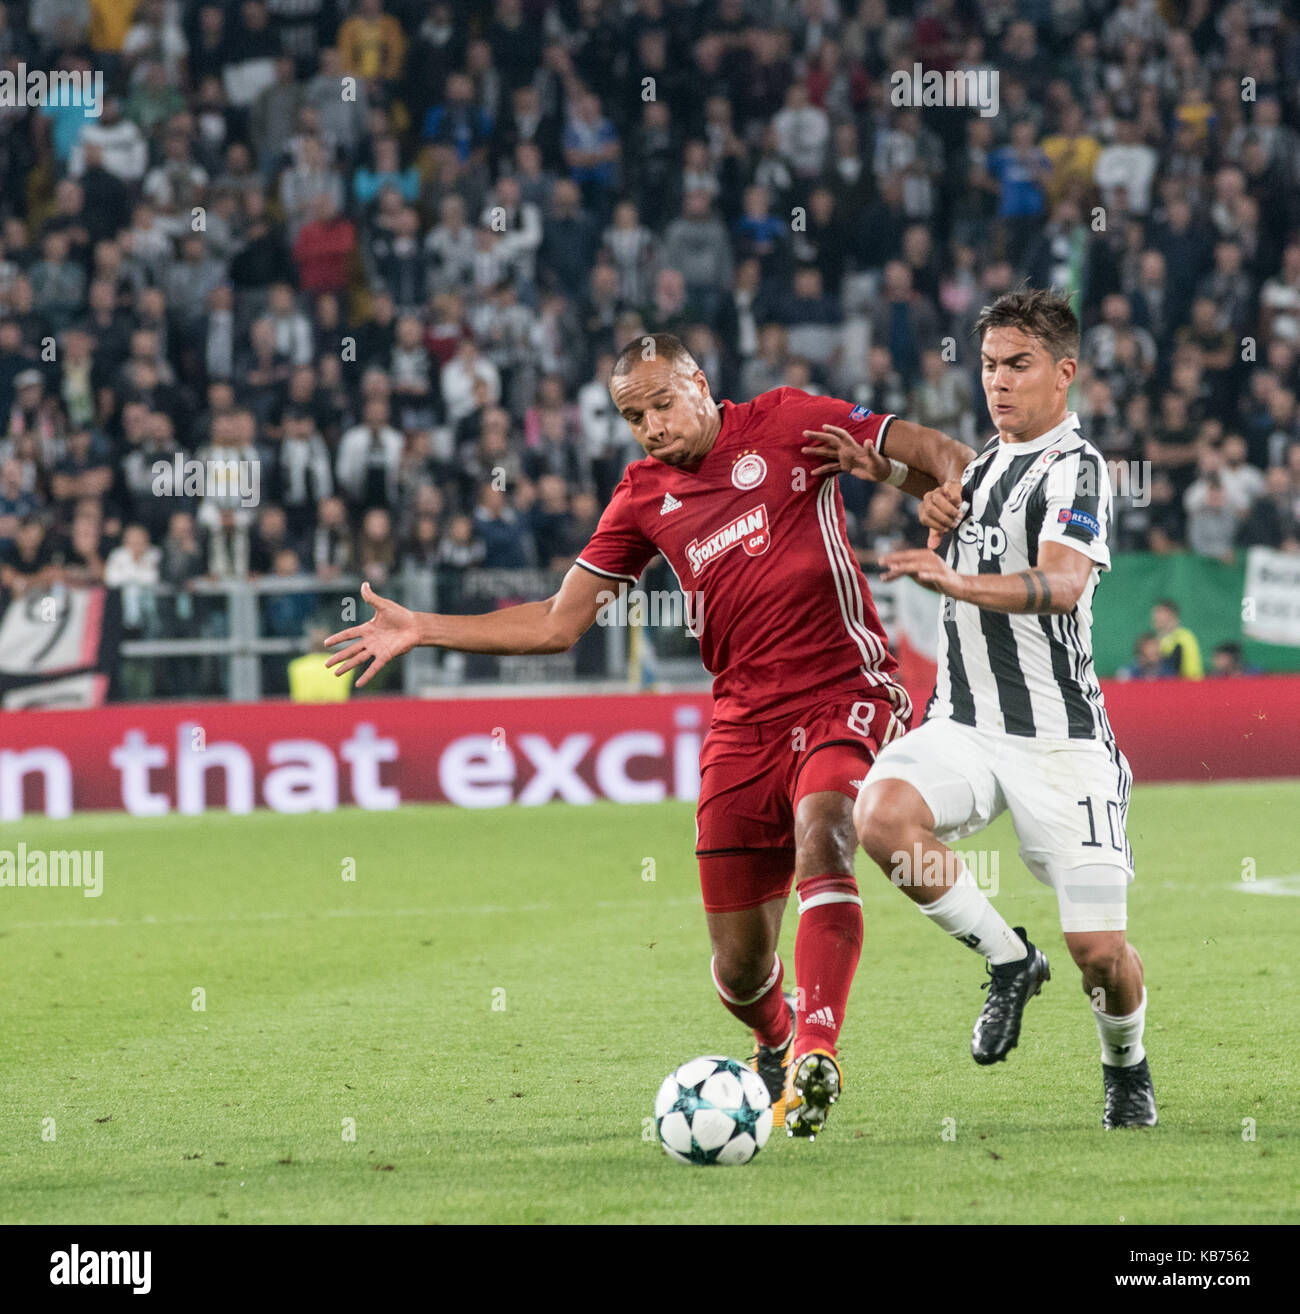 Paulo Dybala During The Champions League Match Juventus Fc Vs Olympiacos